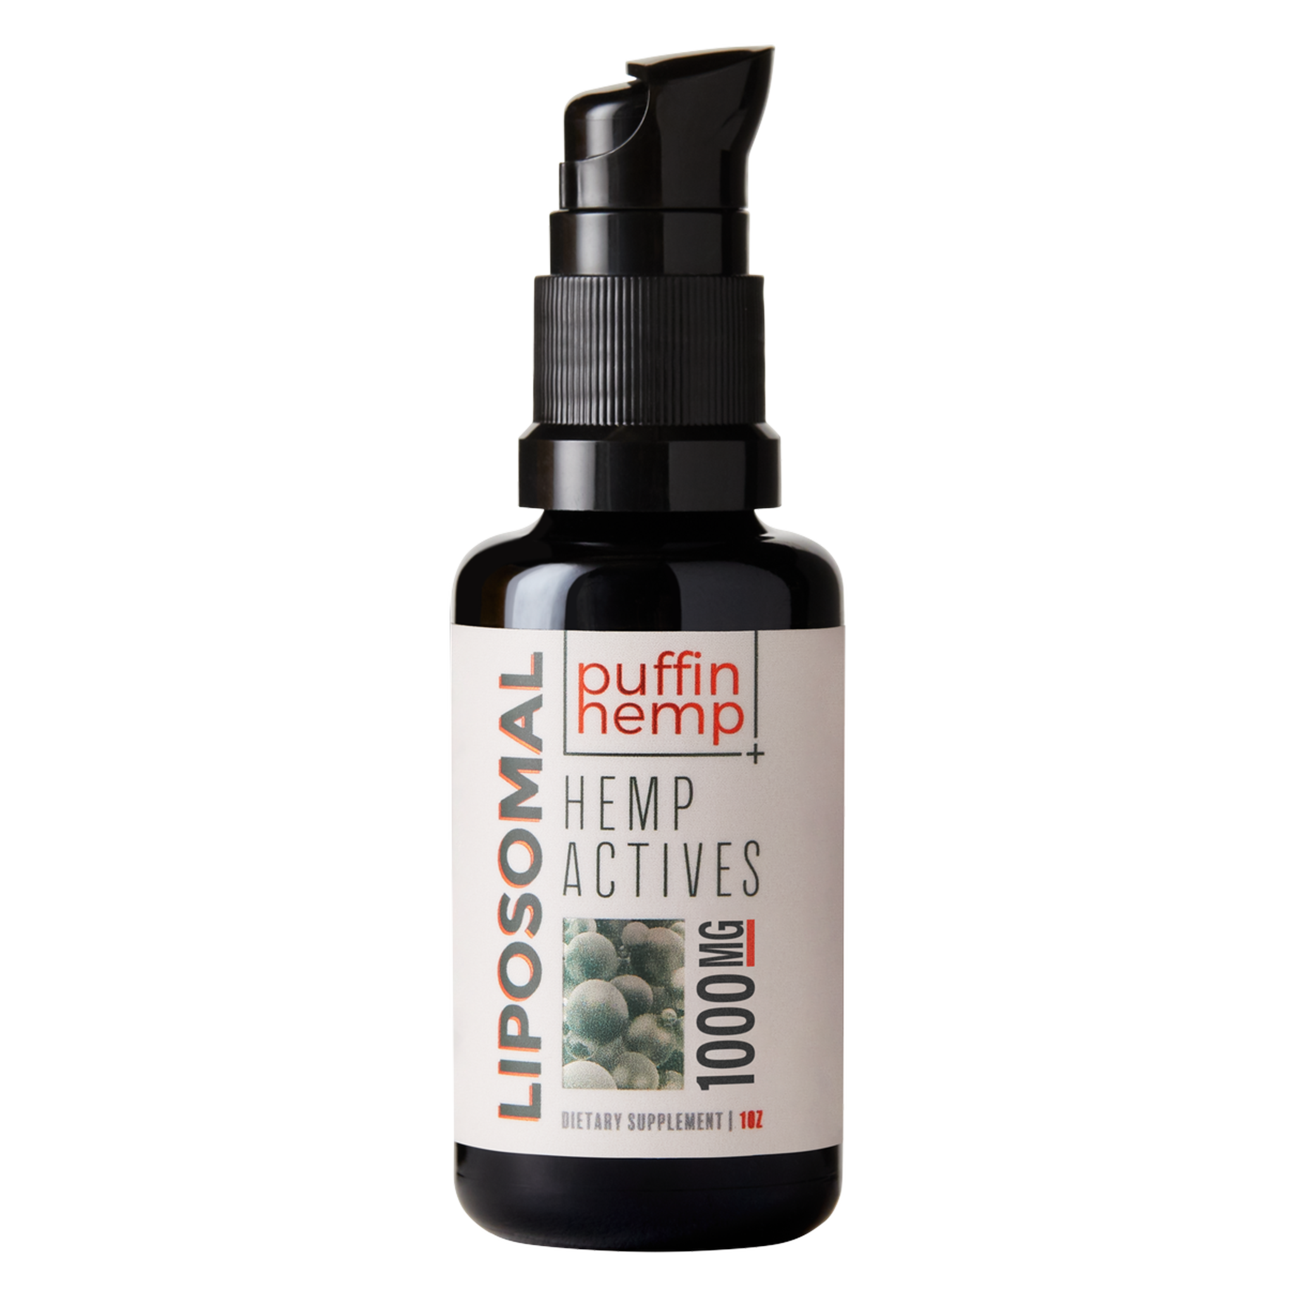 Puffin Hemp Liposomal CBD Oil 1000mg